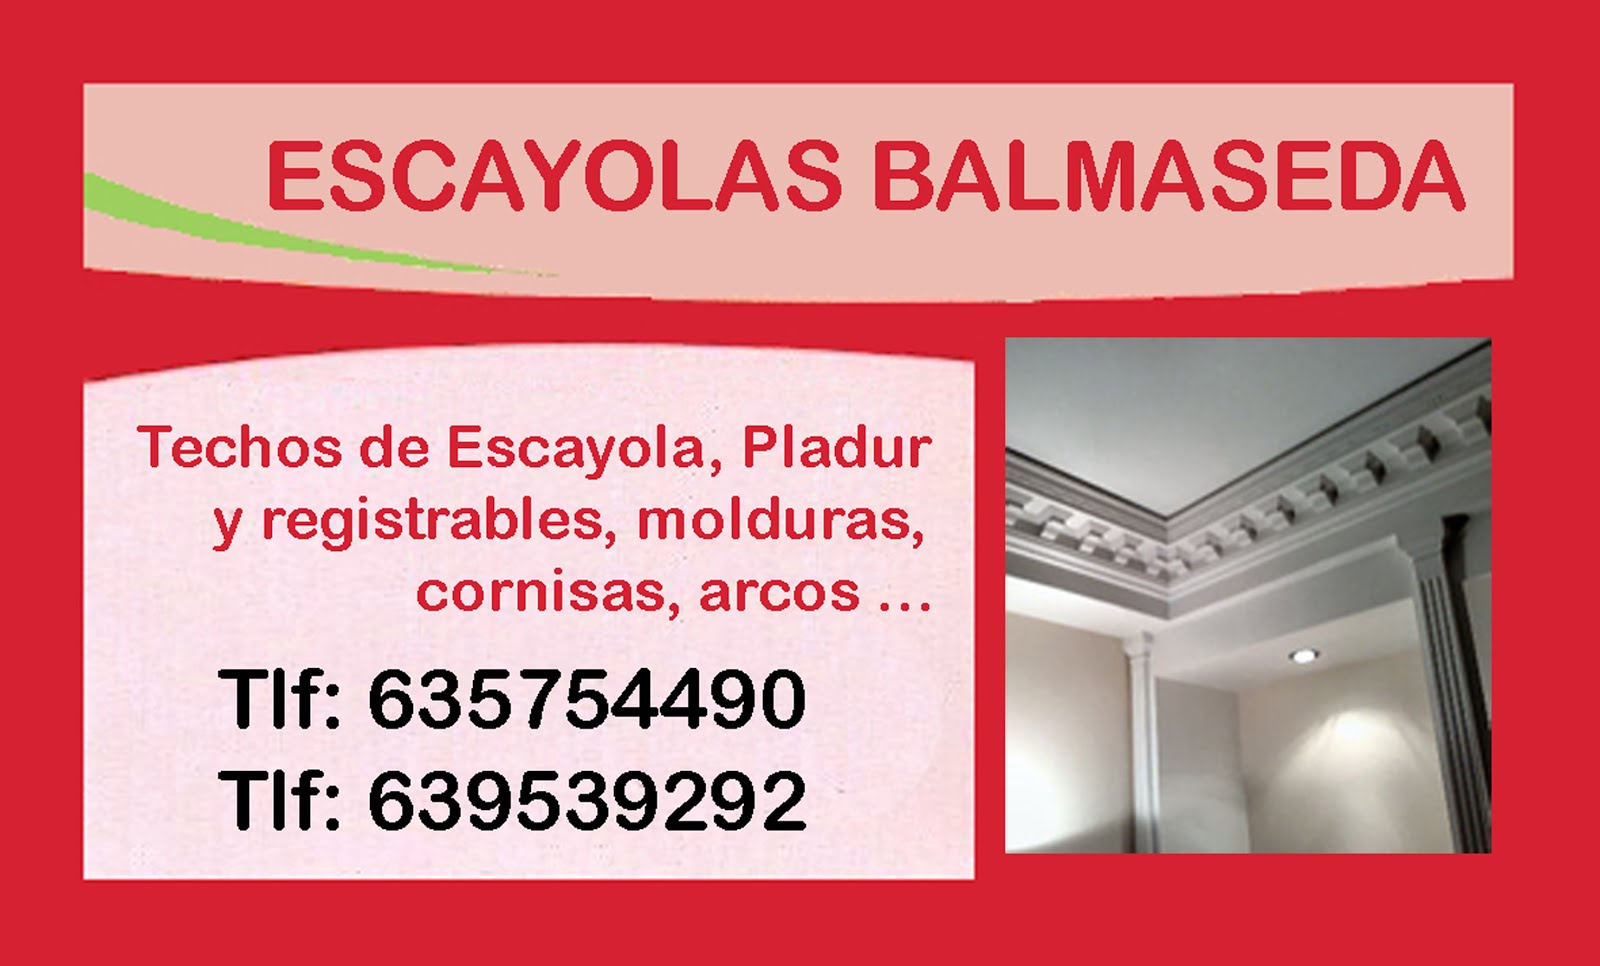 Escayolas Balmaseda